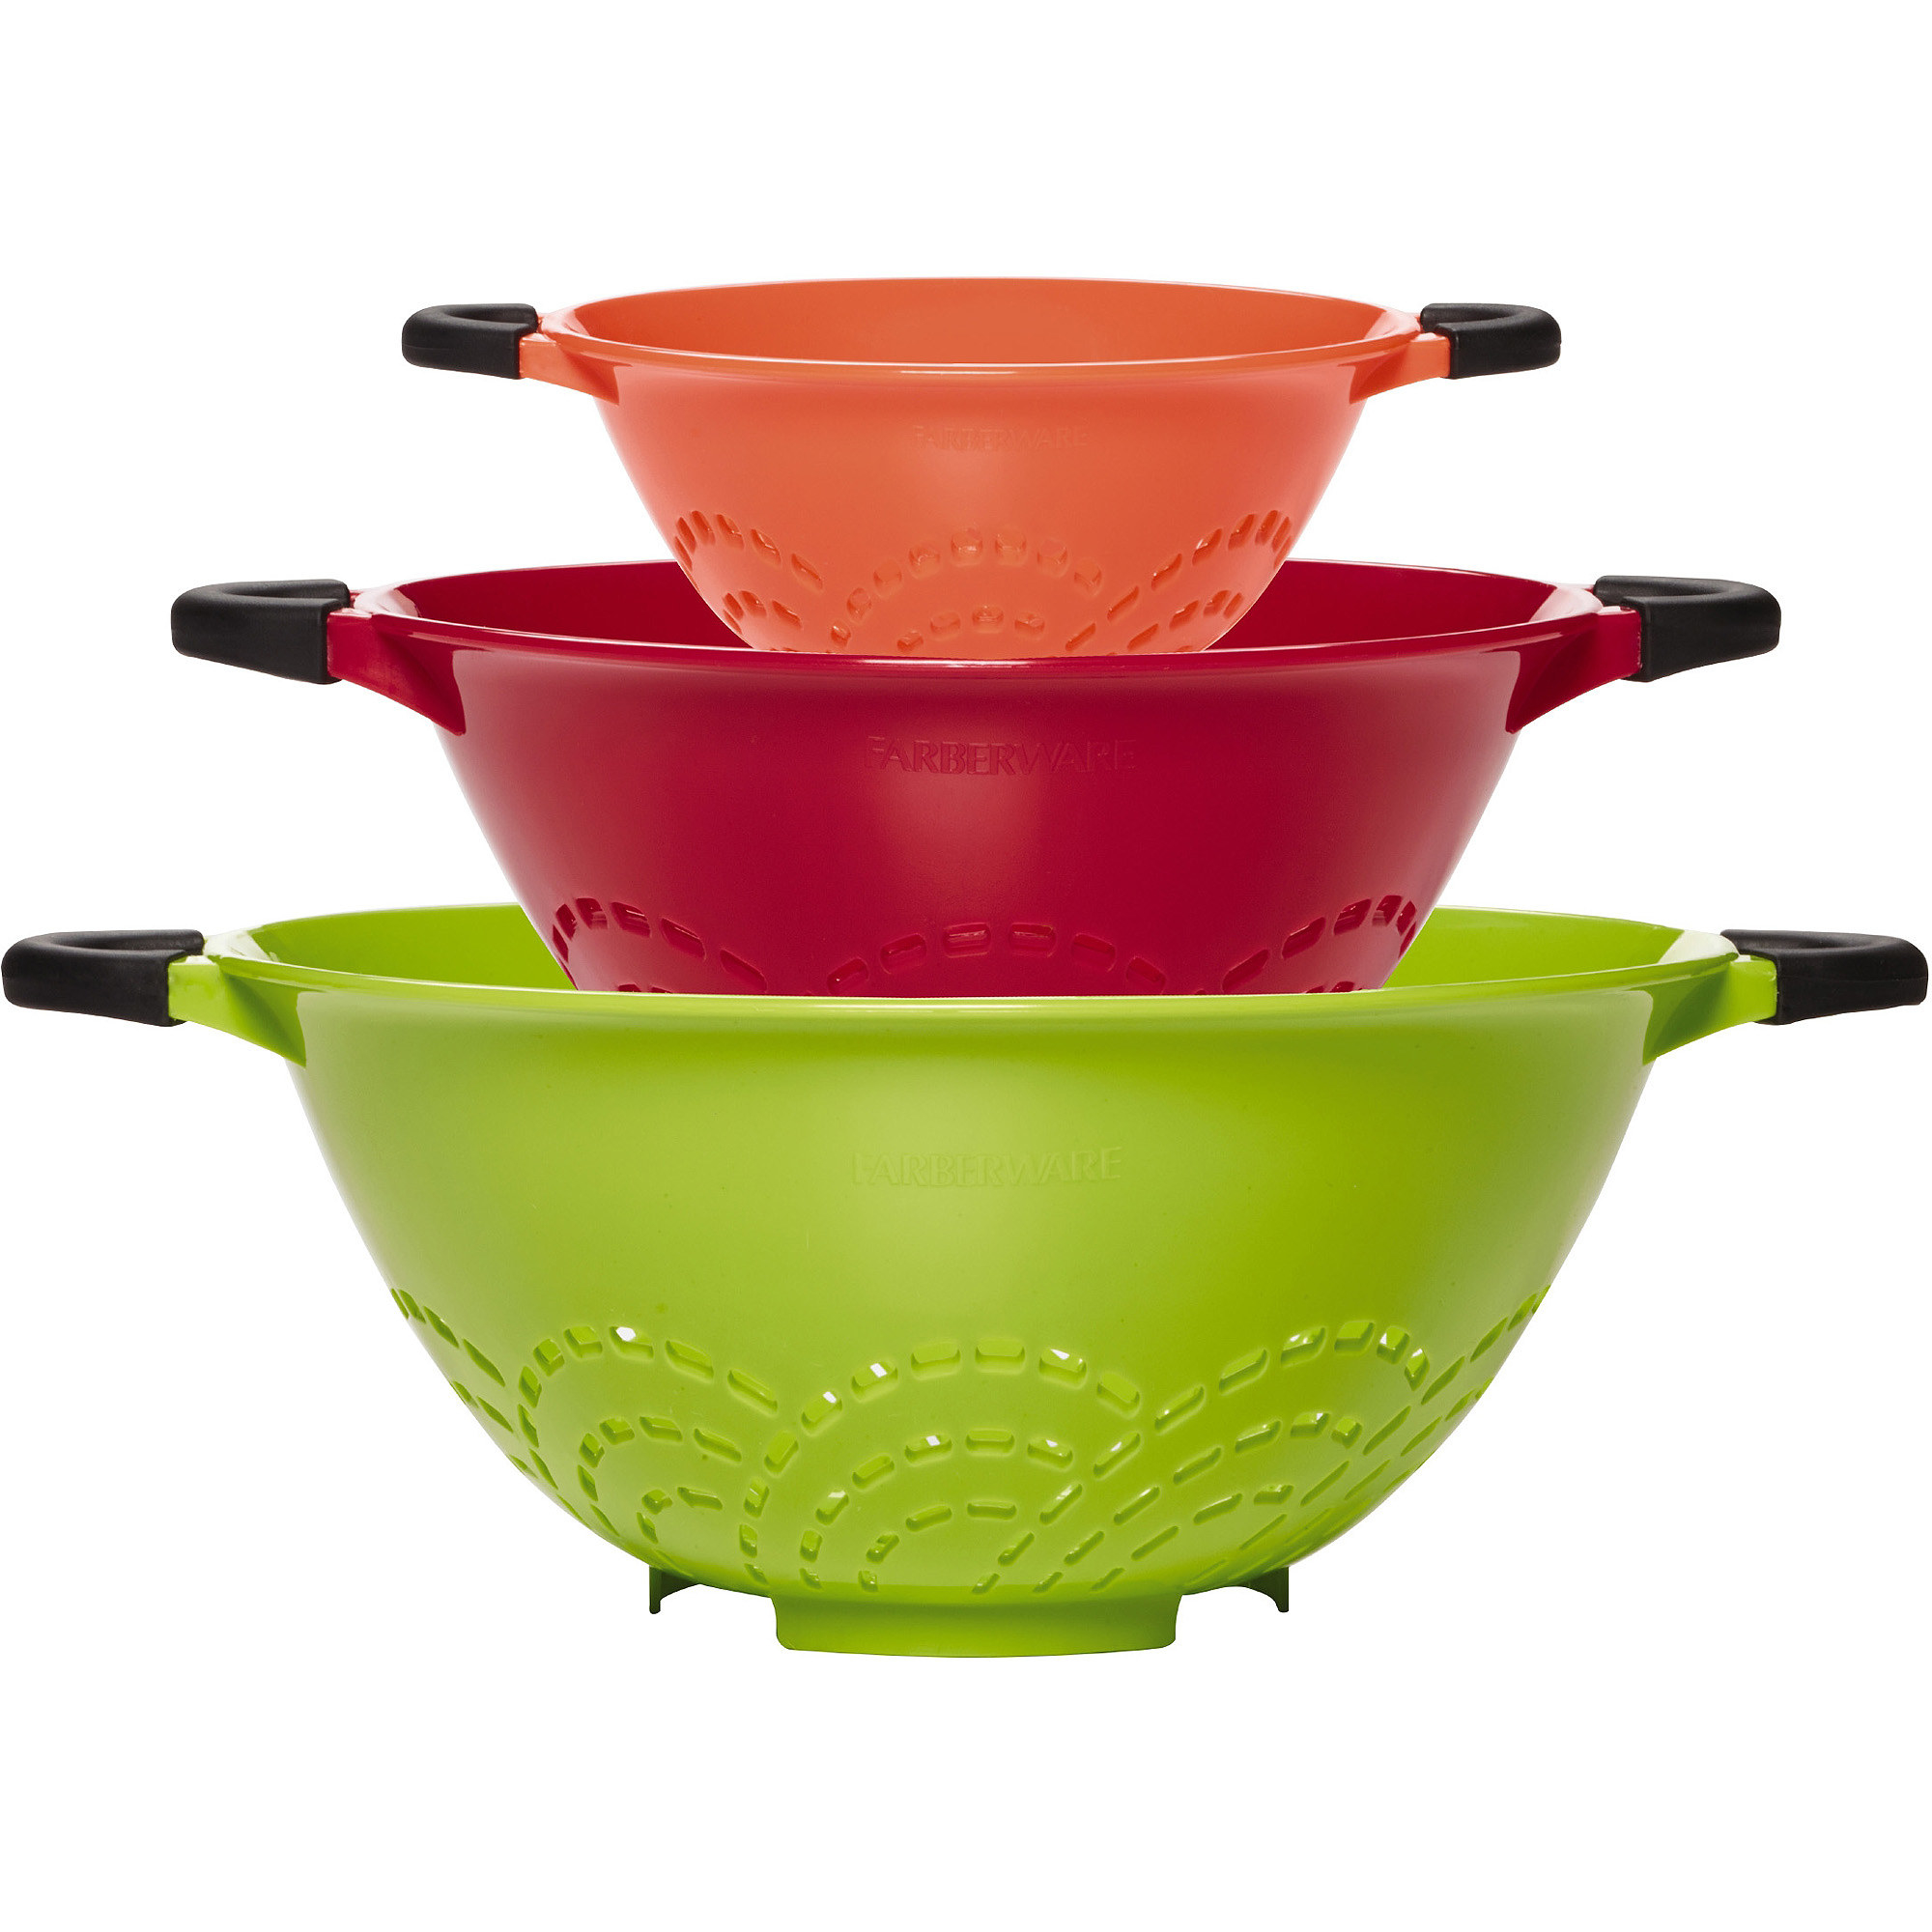 The three colanders stacked in size order to show size and color